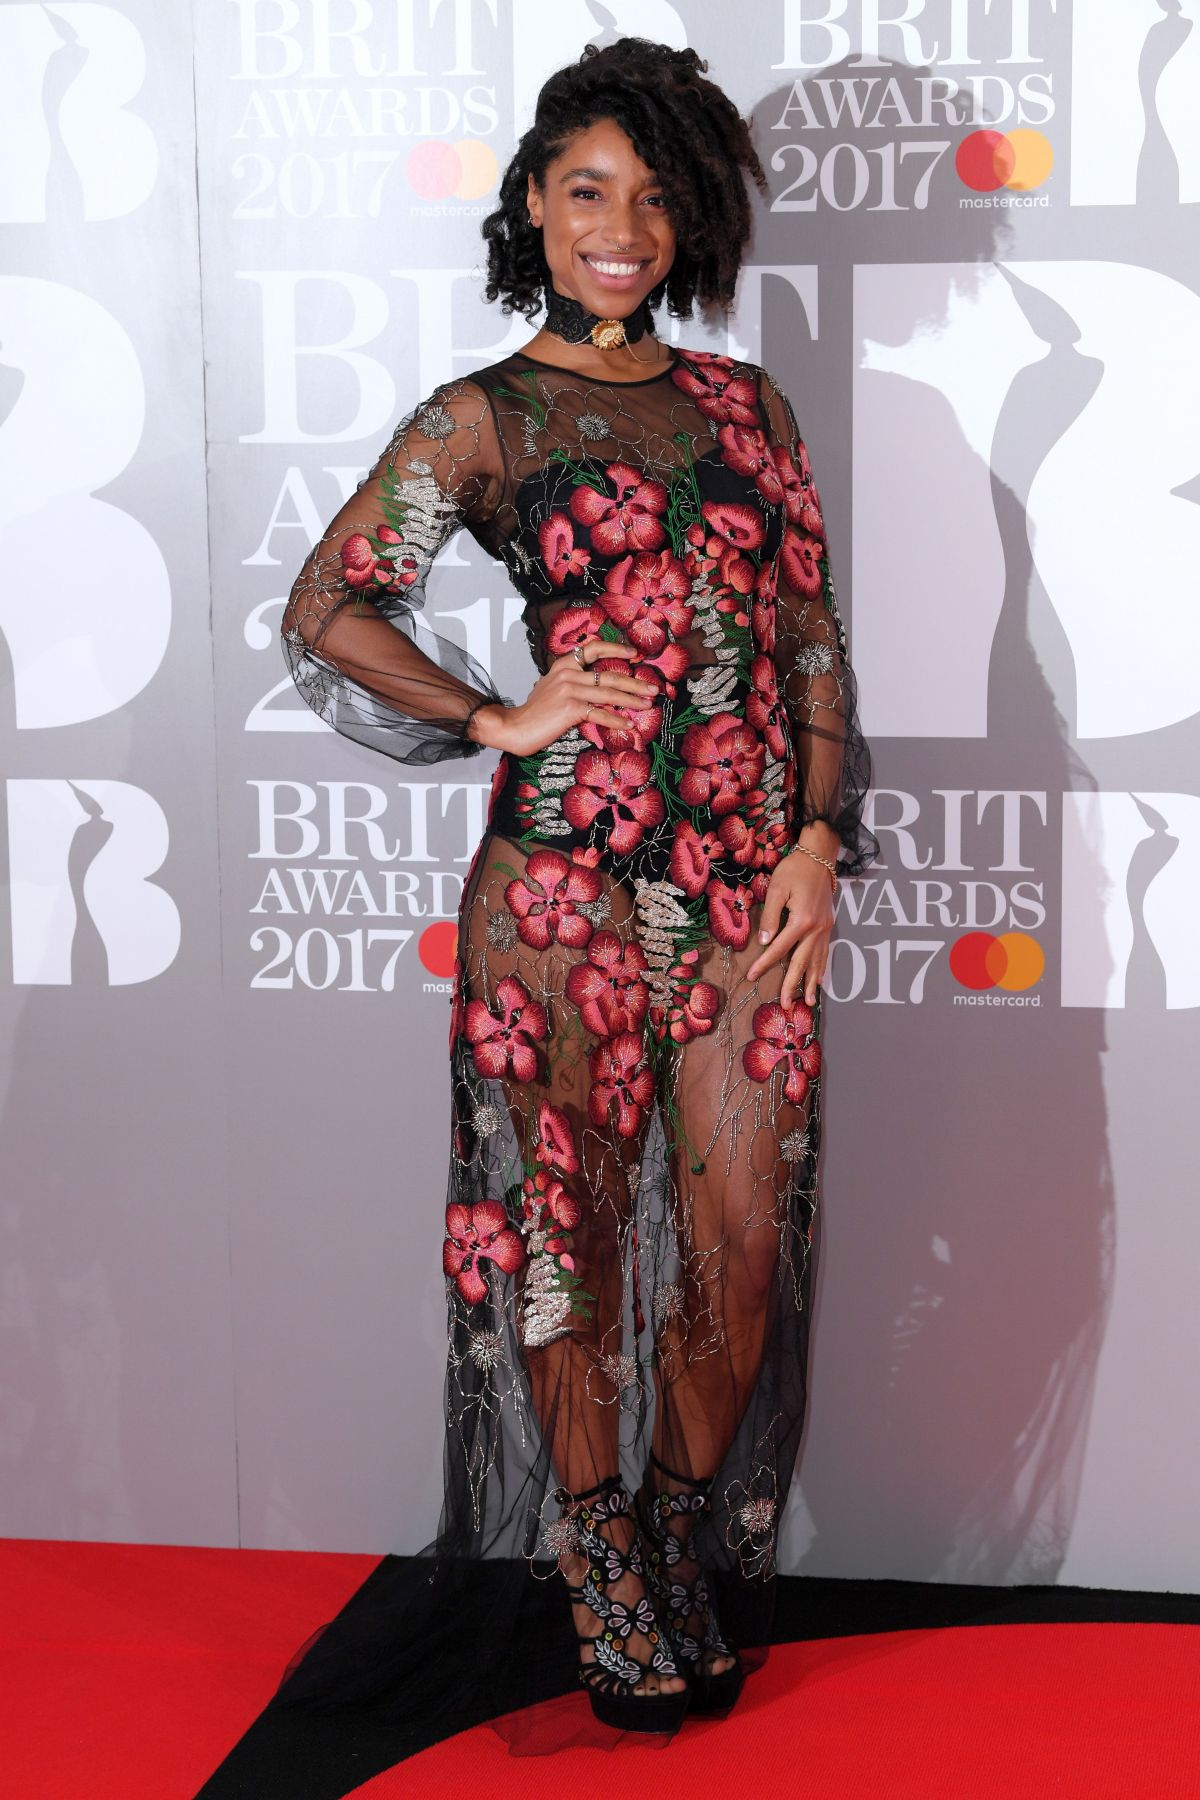 LIANNE LA HAVAS at Brit Awards 2017 in London 02/22/2017